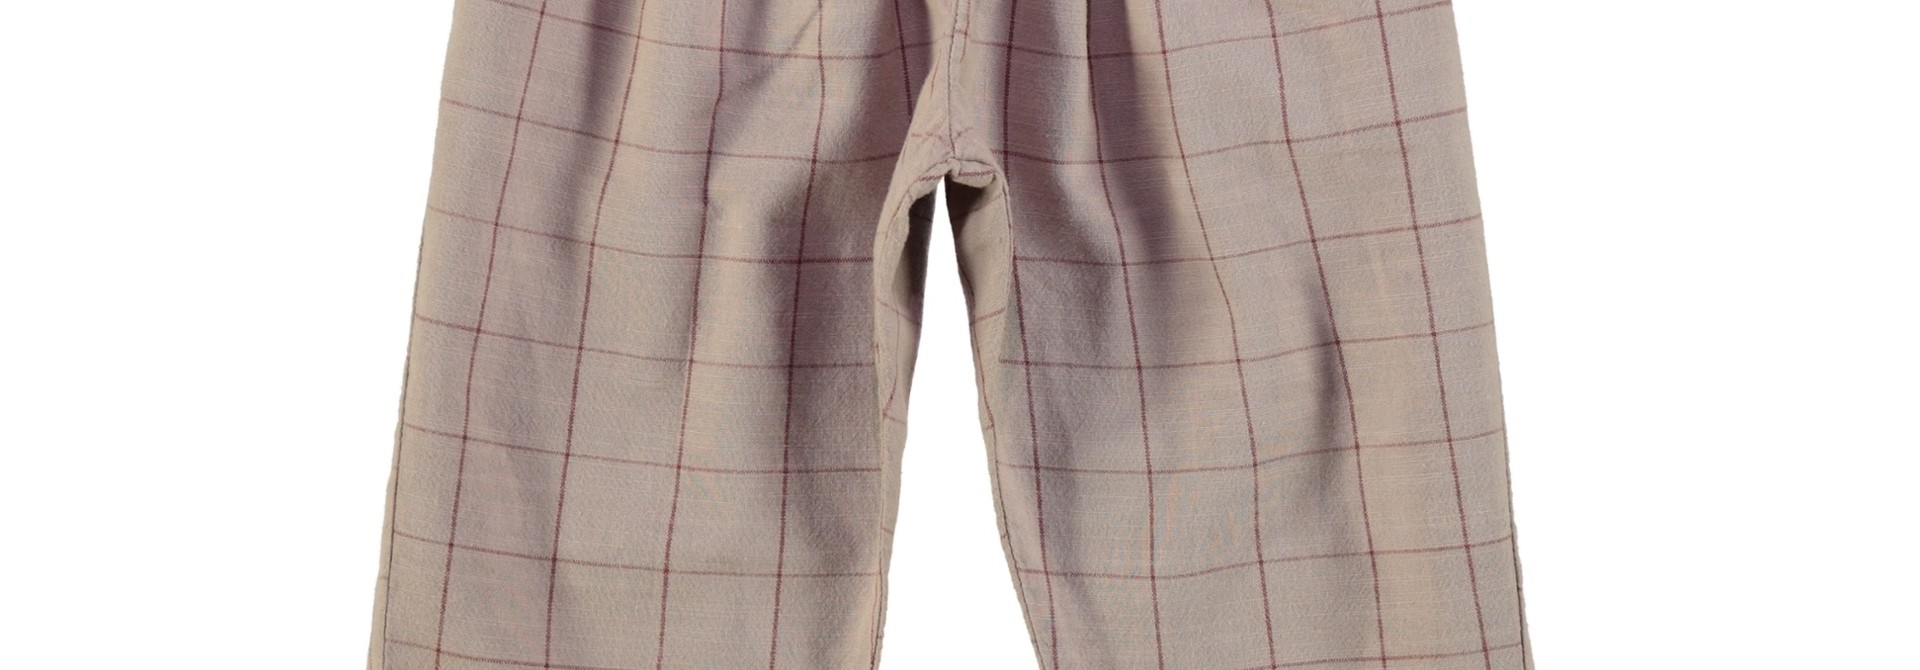 unisex trousers | taupe & garnet checkered